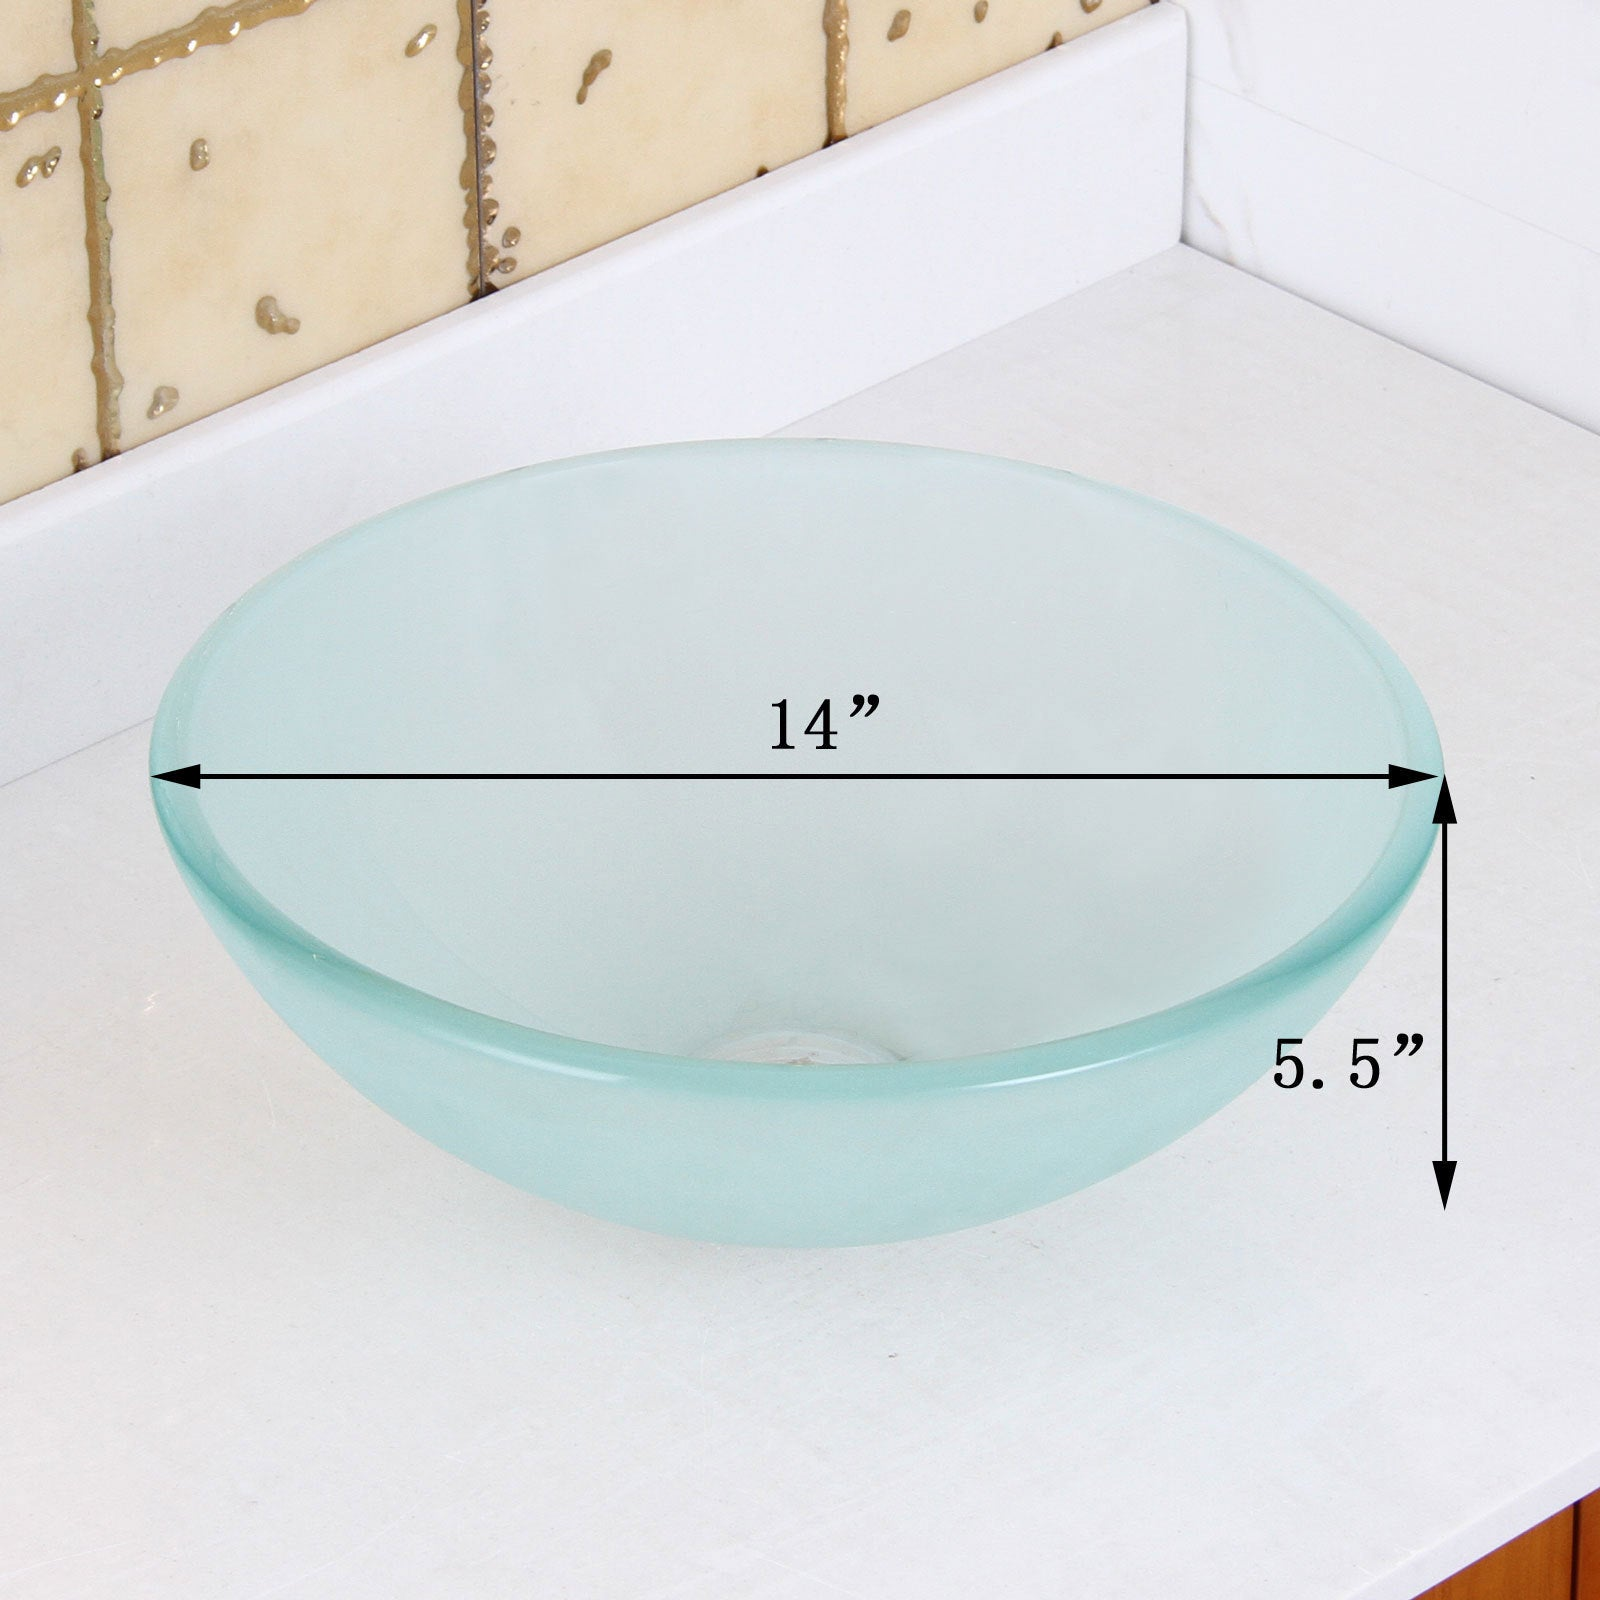 Shop Elite GD08S Small Frosted Tempered Glass Bathroom Vessel Sink ...